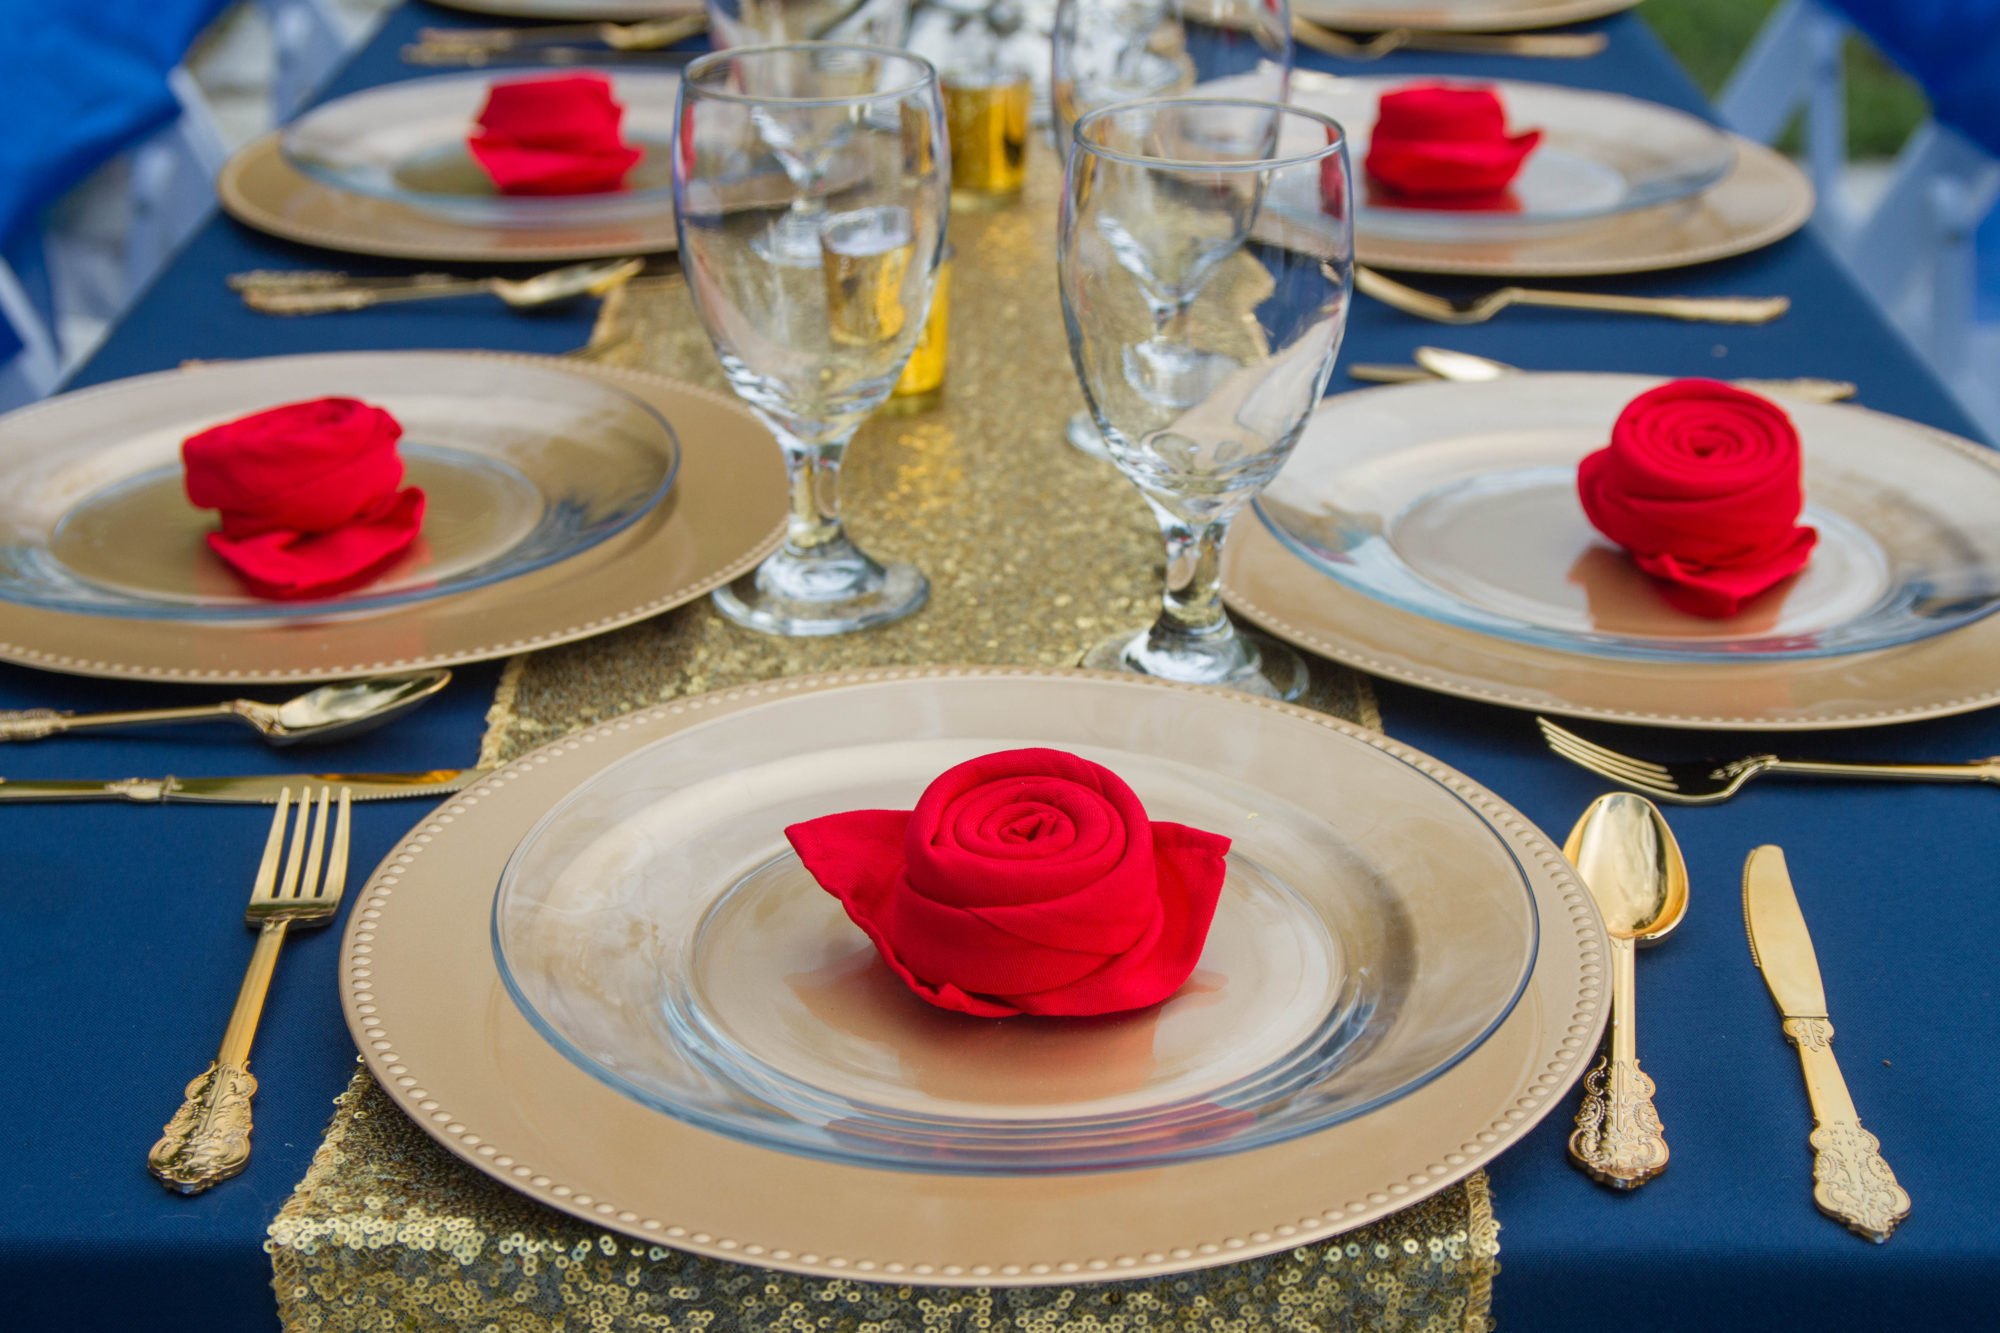 Beauty & the Beast Themed Wedding - It's All In the Details